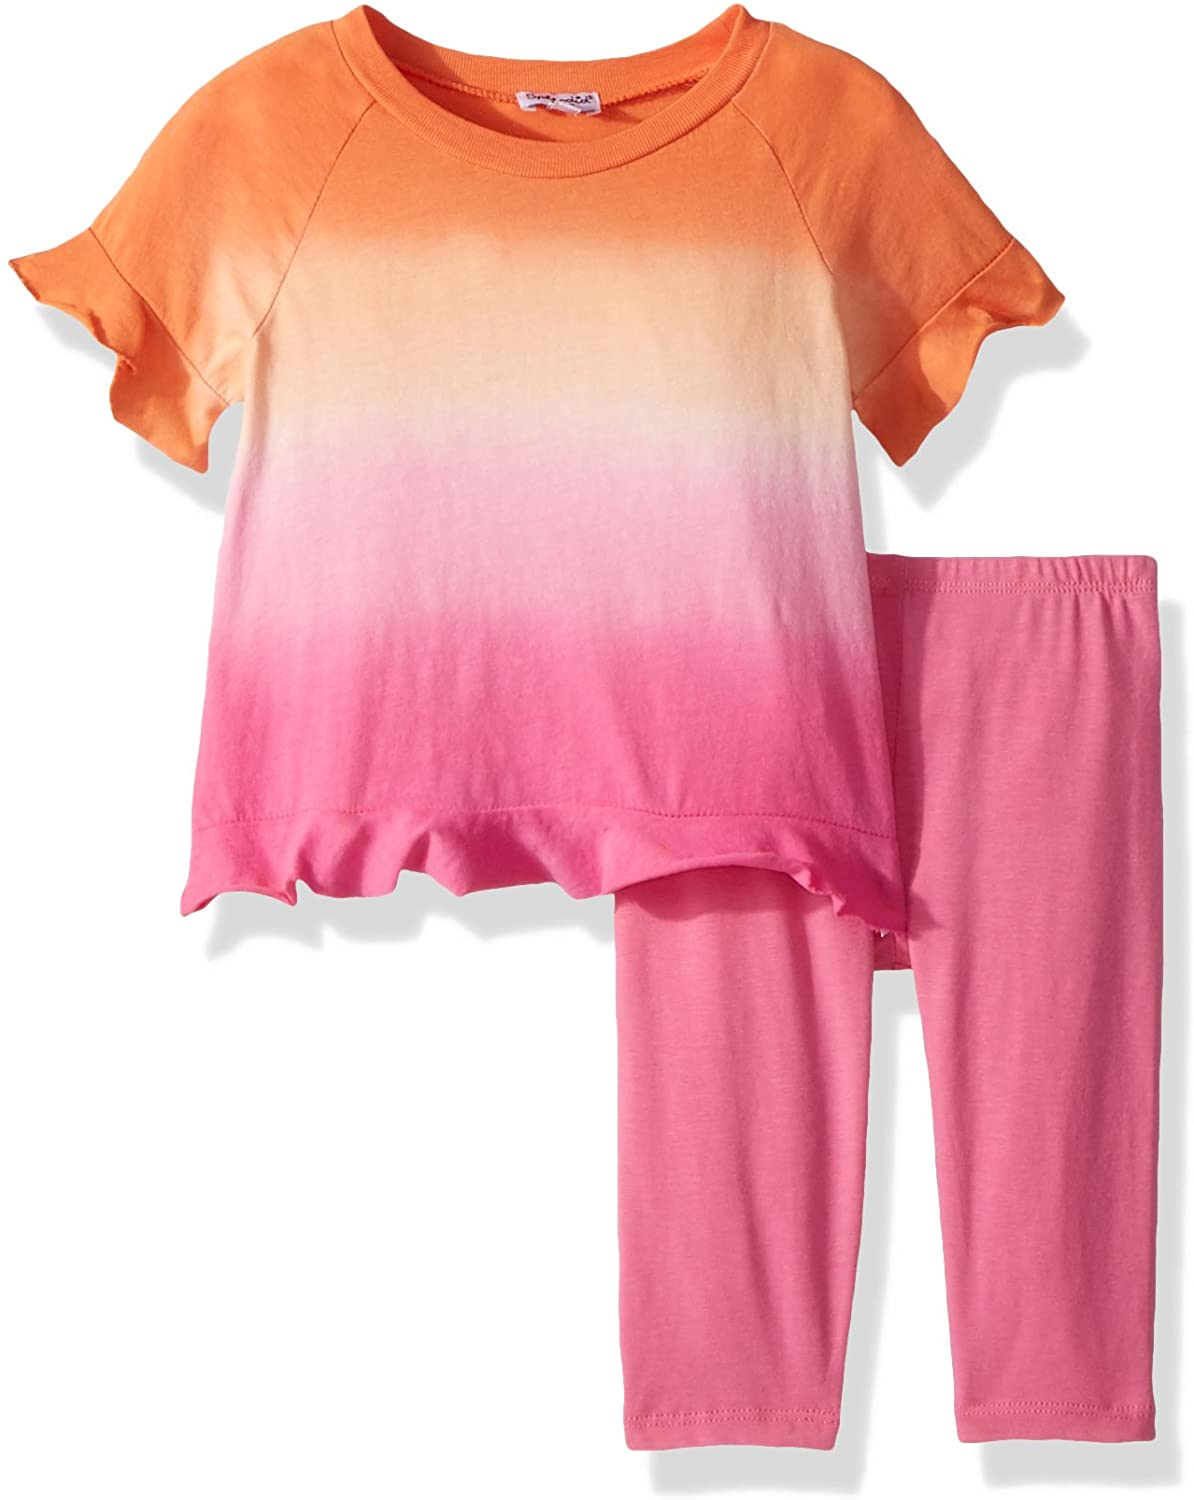 Splendid Girls' Kids and Baby Short Sleeve Top and Bottom 2 Piece Set